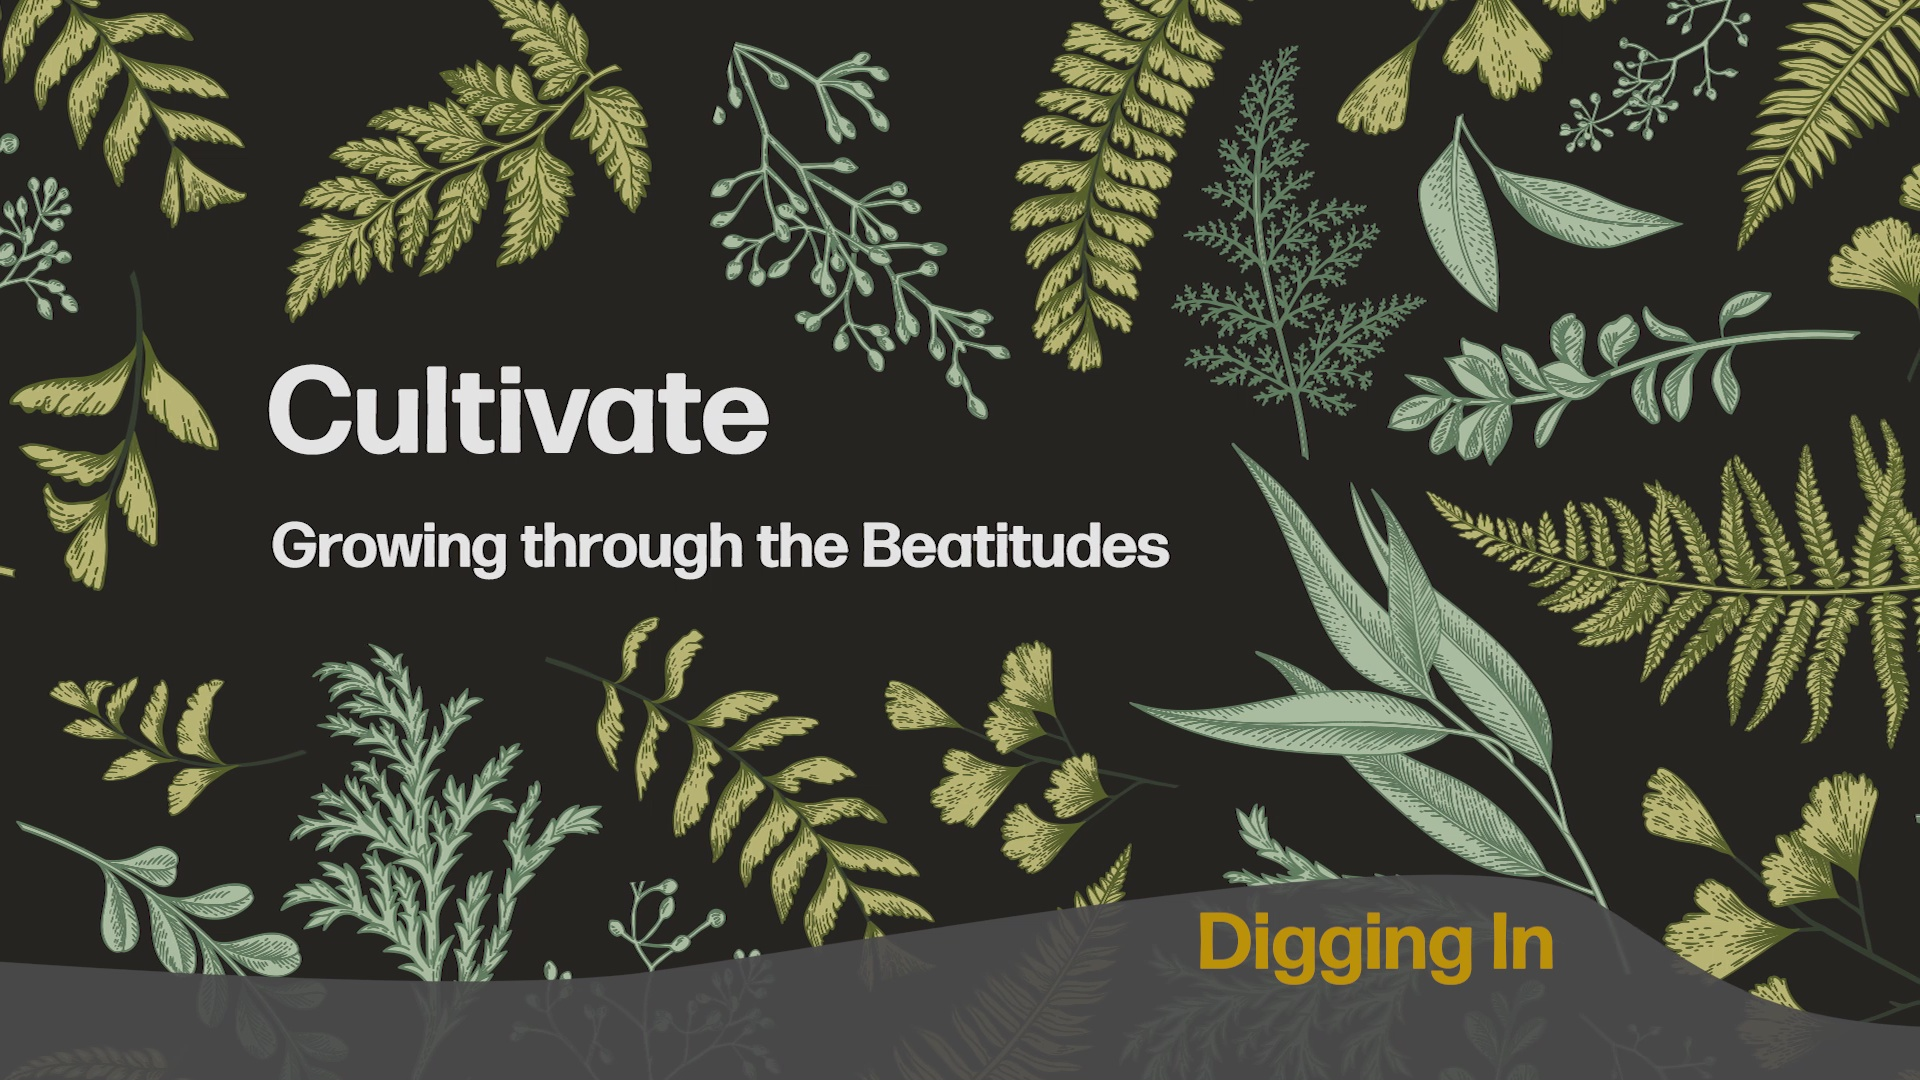 Digging In - June 23 - June 30, 2018 - Cultivate